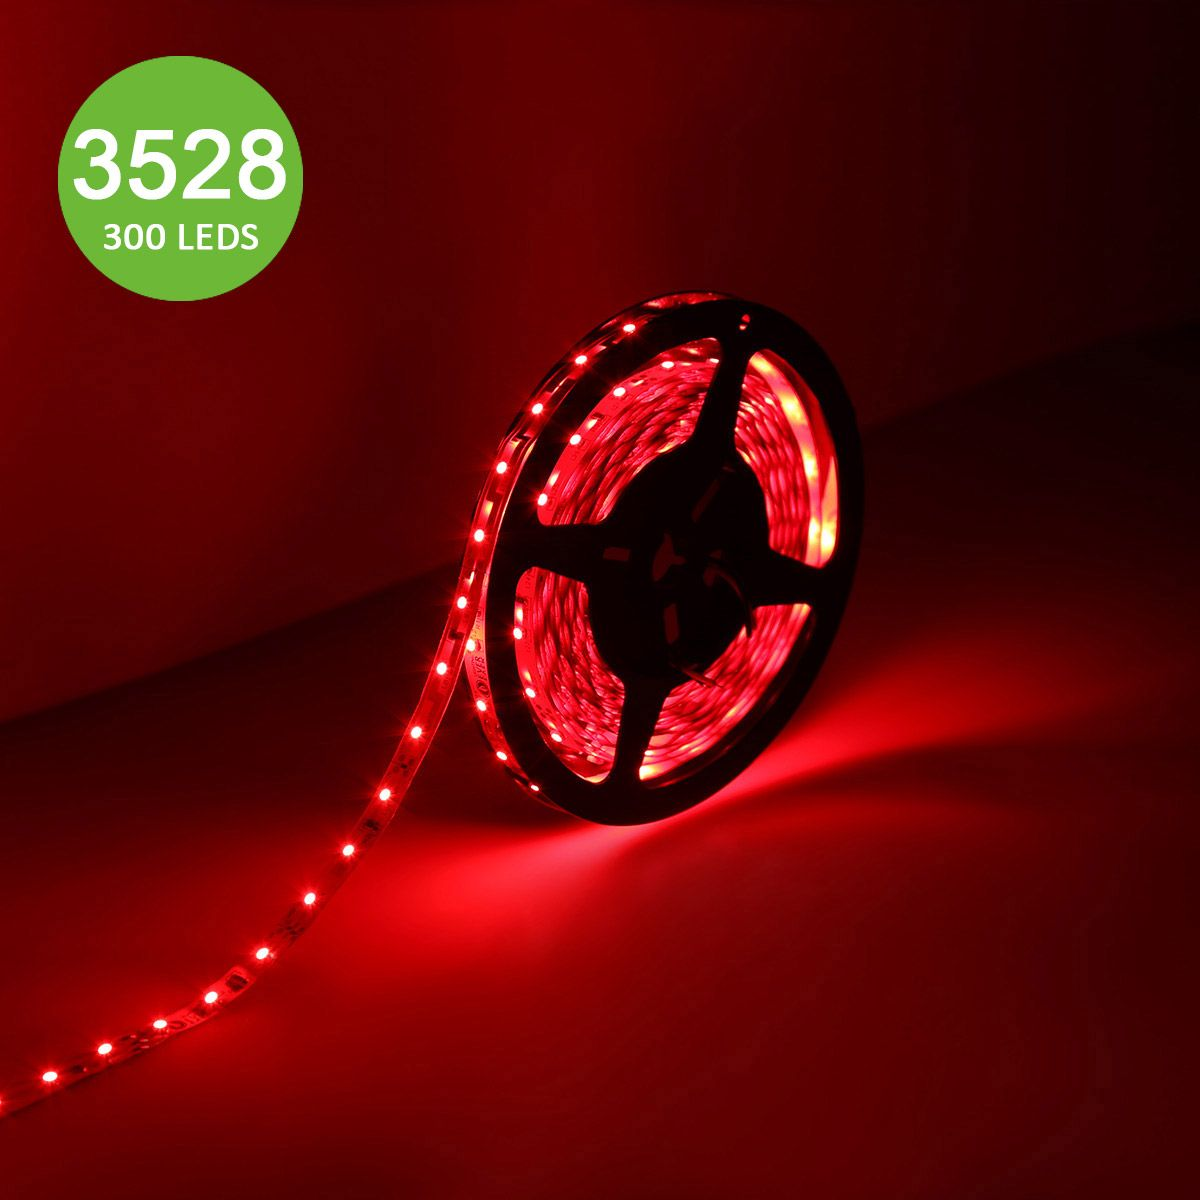 12v halloween party lighting red led strip lights le 12v halloween party lighting red led strip lights le aloadofball Gallery